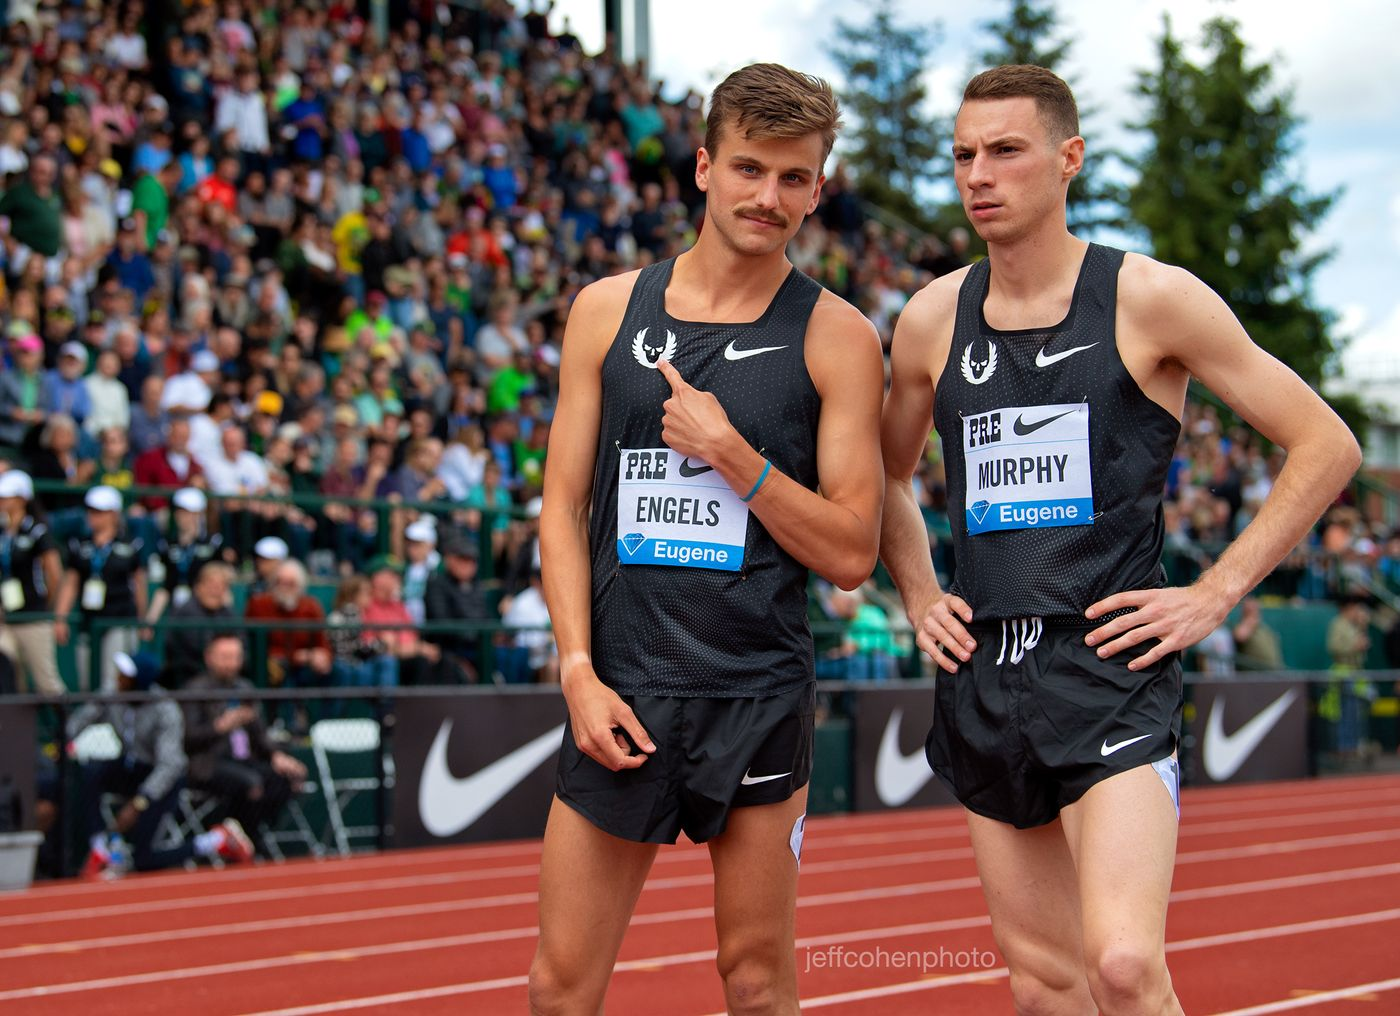 2018--pre-classic-day-1765-engels-murphy-mile--jeff-cohen-photo--web.jpg